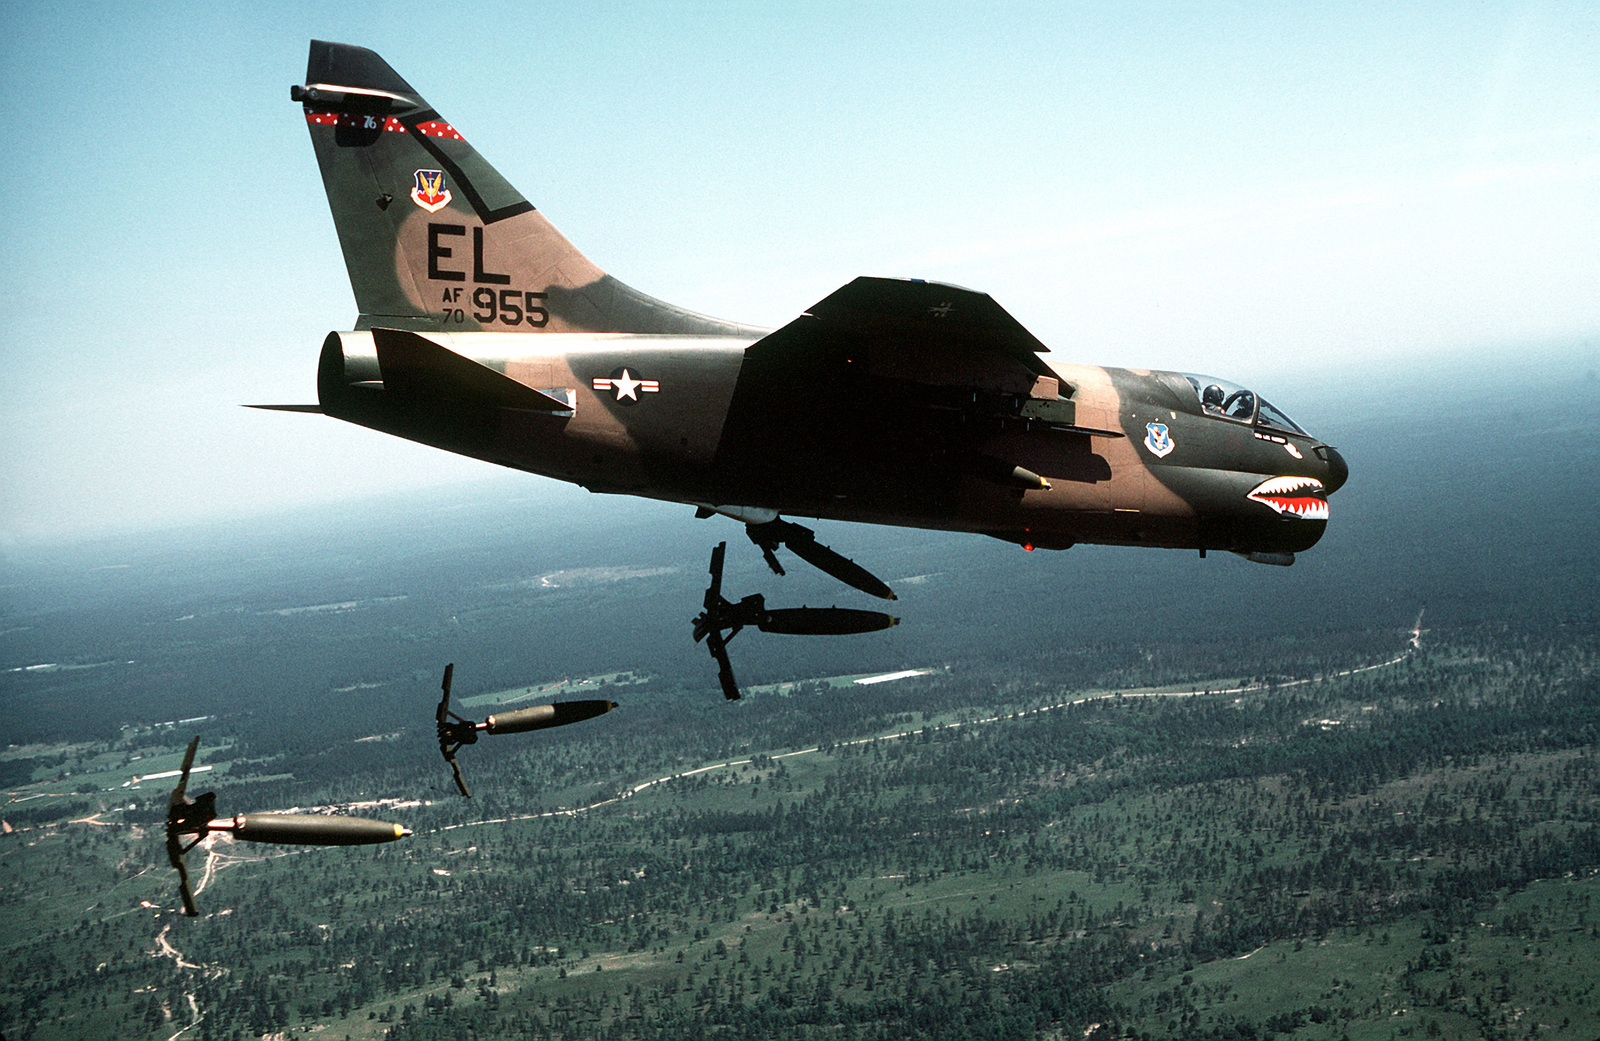 Low angle right side view of an A-7 Corsair II aircraft of the 76th Tactical Fighter Squadron, 23rd Tactical Fighter Wing, airdropping Mark 82 hi-drag bombs over the Tyndall Air Force Base range